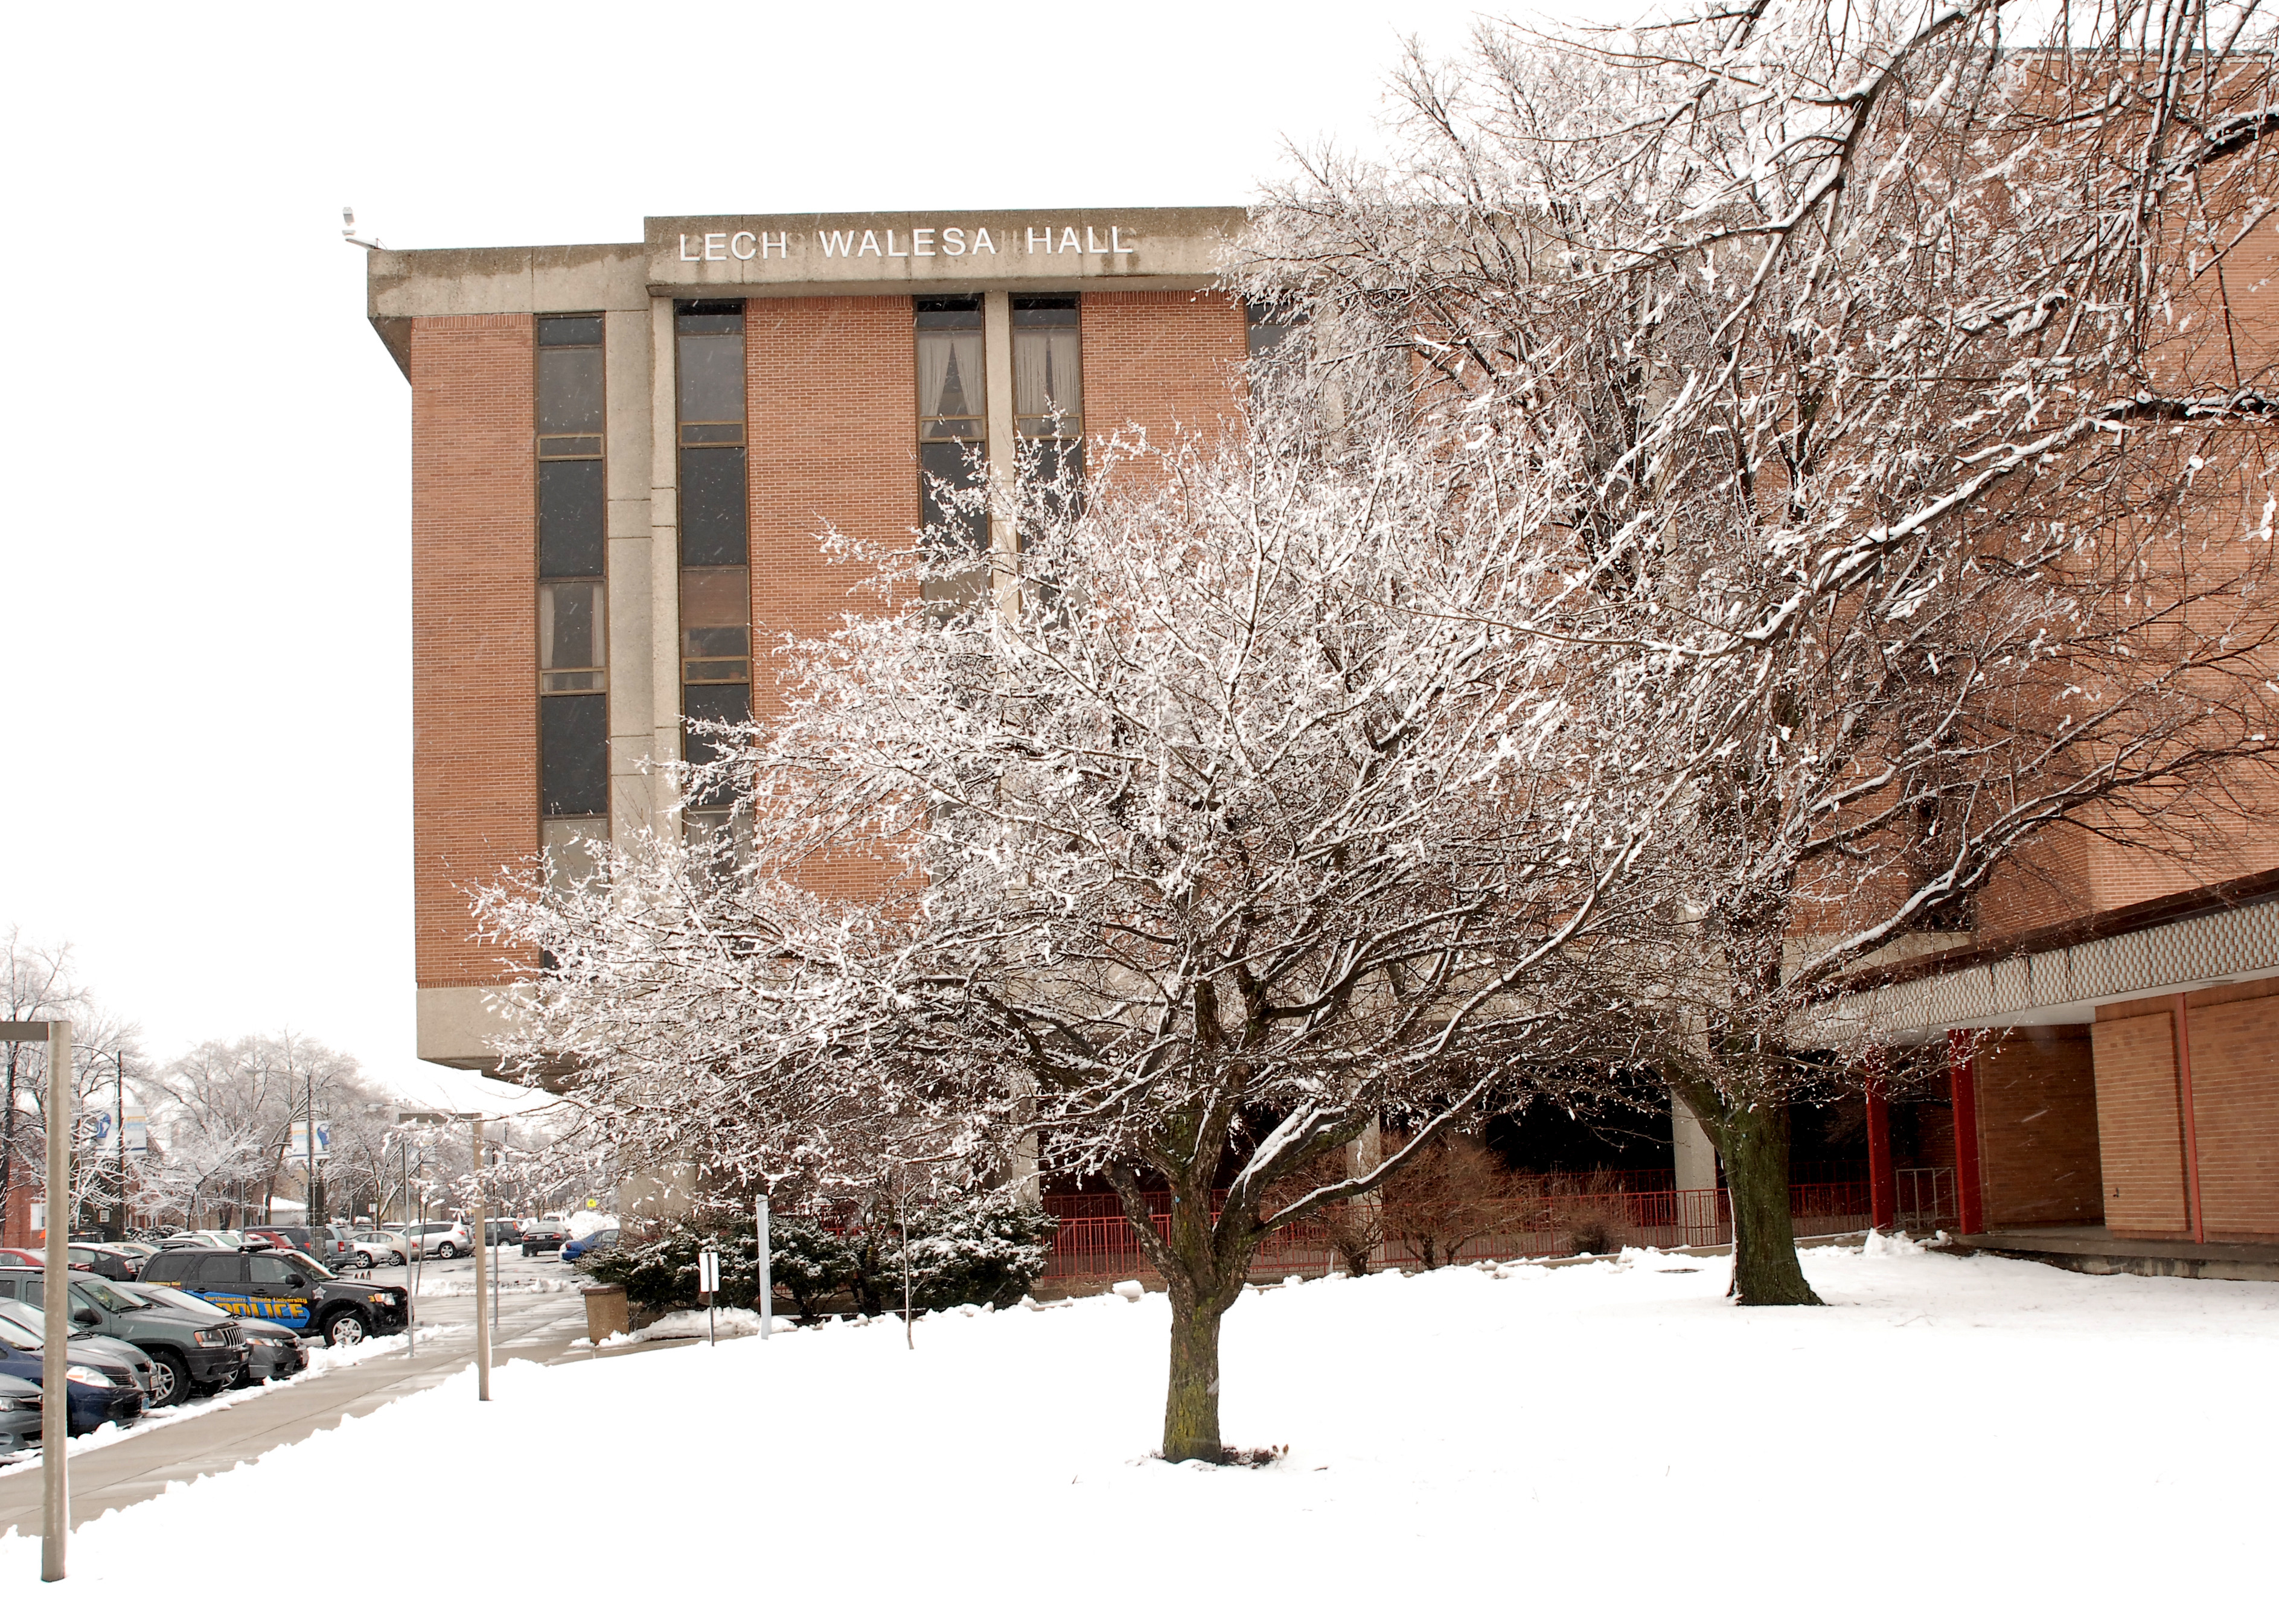 Lech Walesa Hall exterior during the winter.